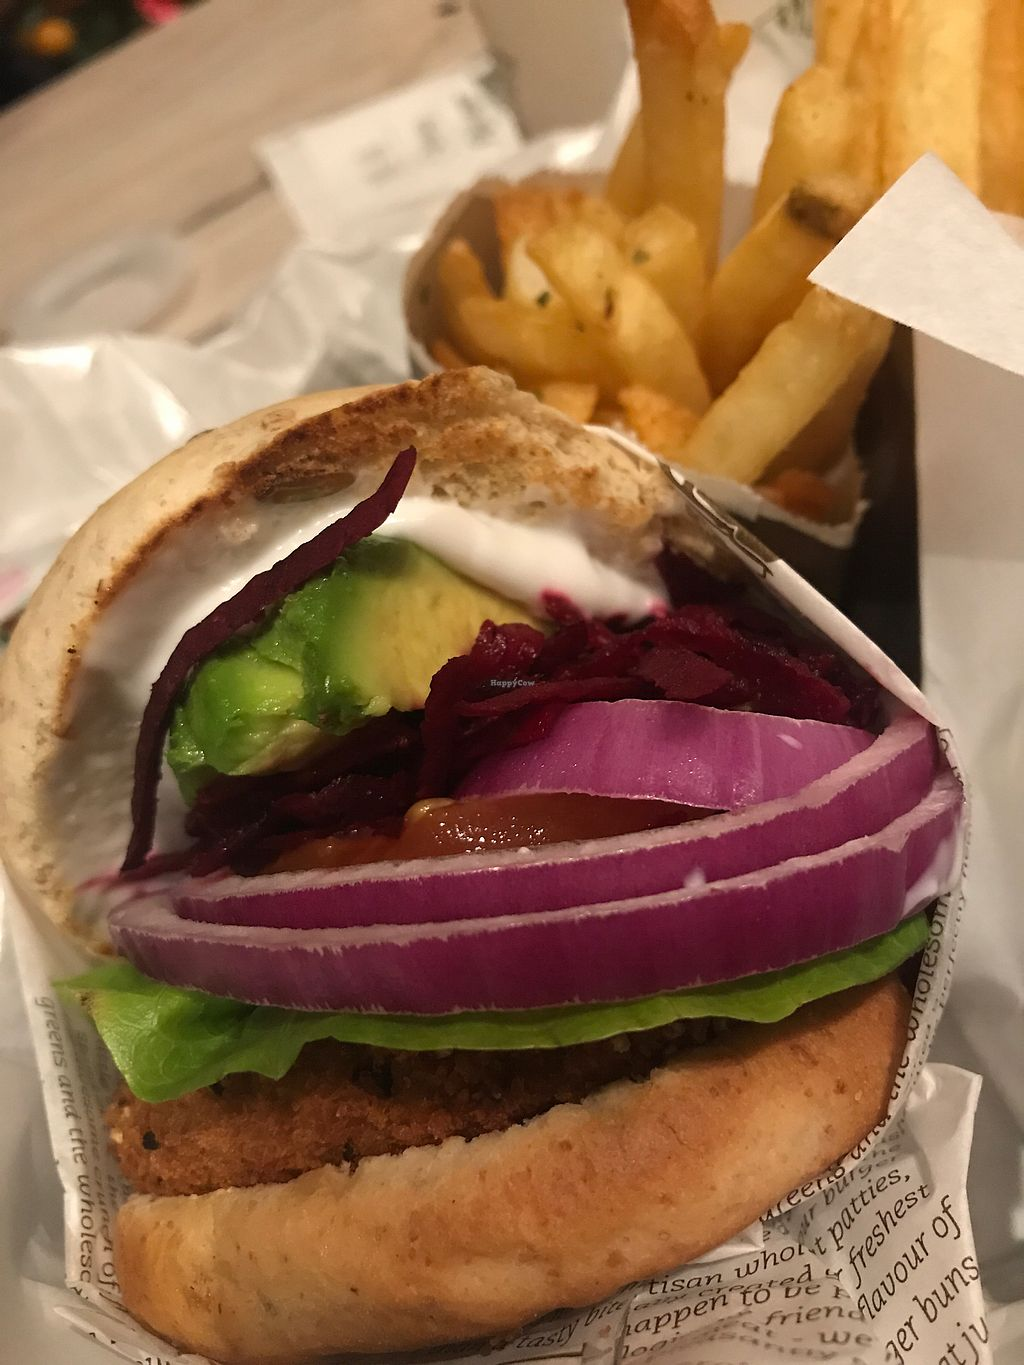 """Photo of VeganBurg  by <a href=""""/members/profile/MelissaEklund"""">MelissaEklund</a> <br/>Avocado beetroot burger  <br/> February 13, 2018  - <a href='/contact/abuse/image/23779/358838'>Report</a>"""